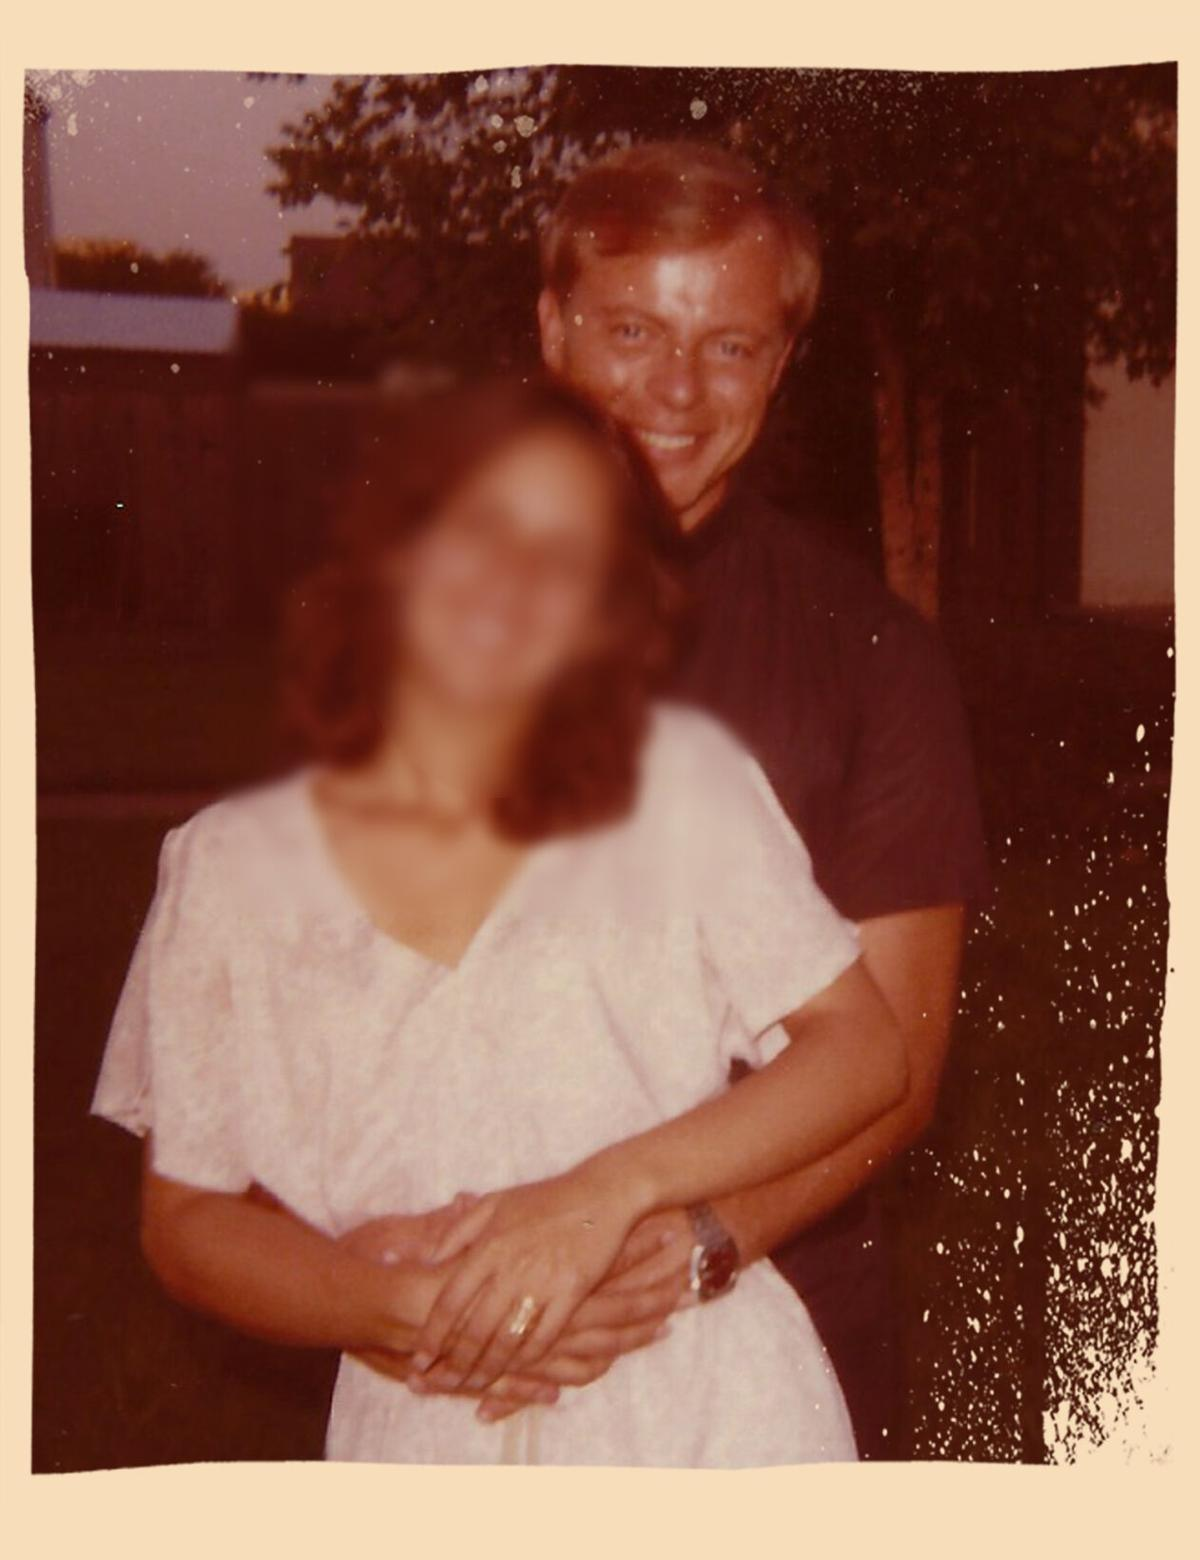 Brian Highfill with woman